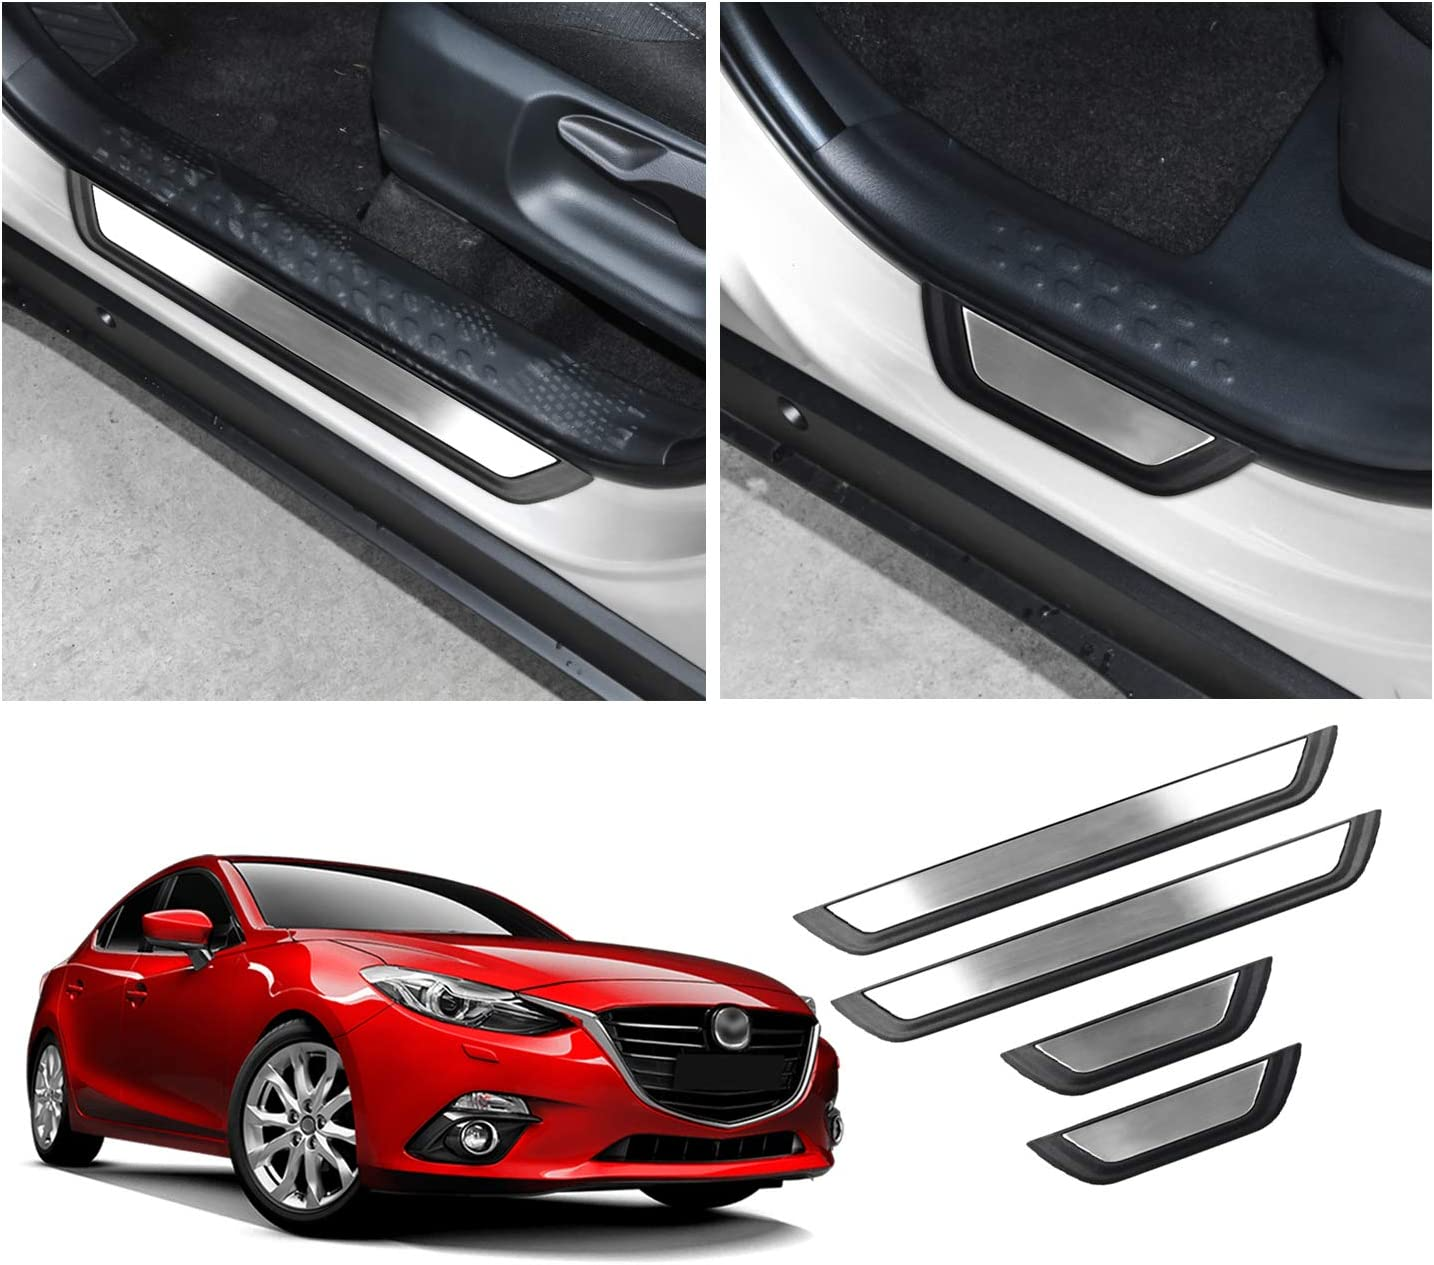 For Mazda 3 Accessories Door Sill Cover Scuff Plate Protector Guard 2014 2020